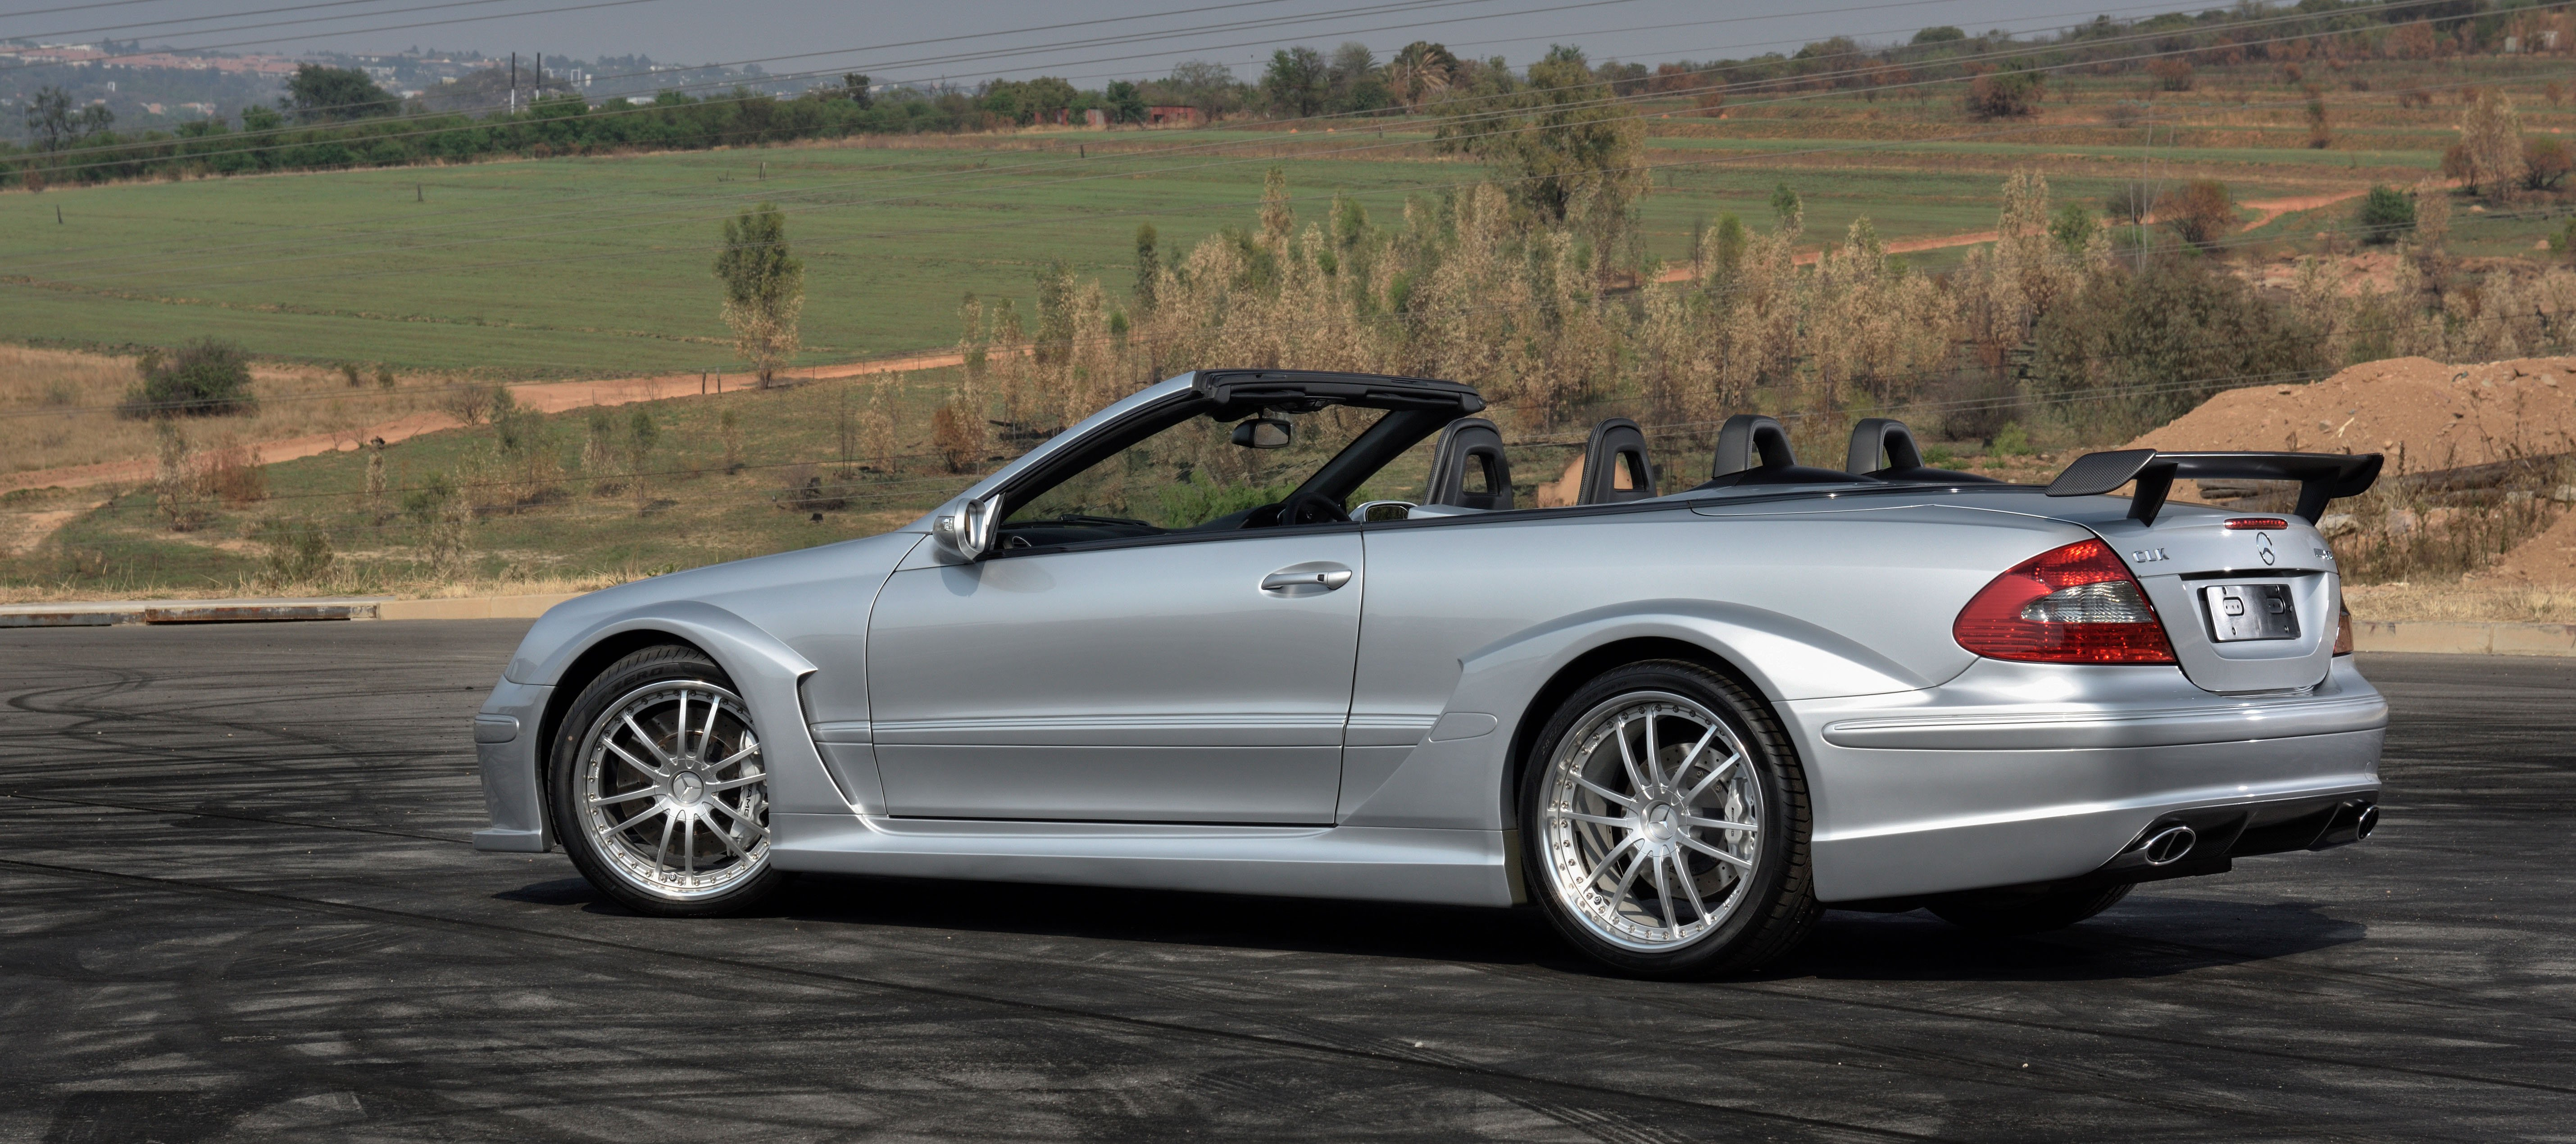 Mercedes Benz CLK DTM Convertible